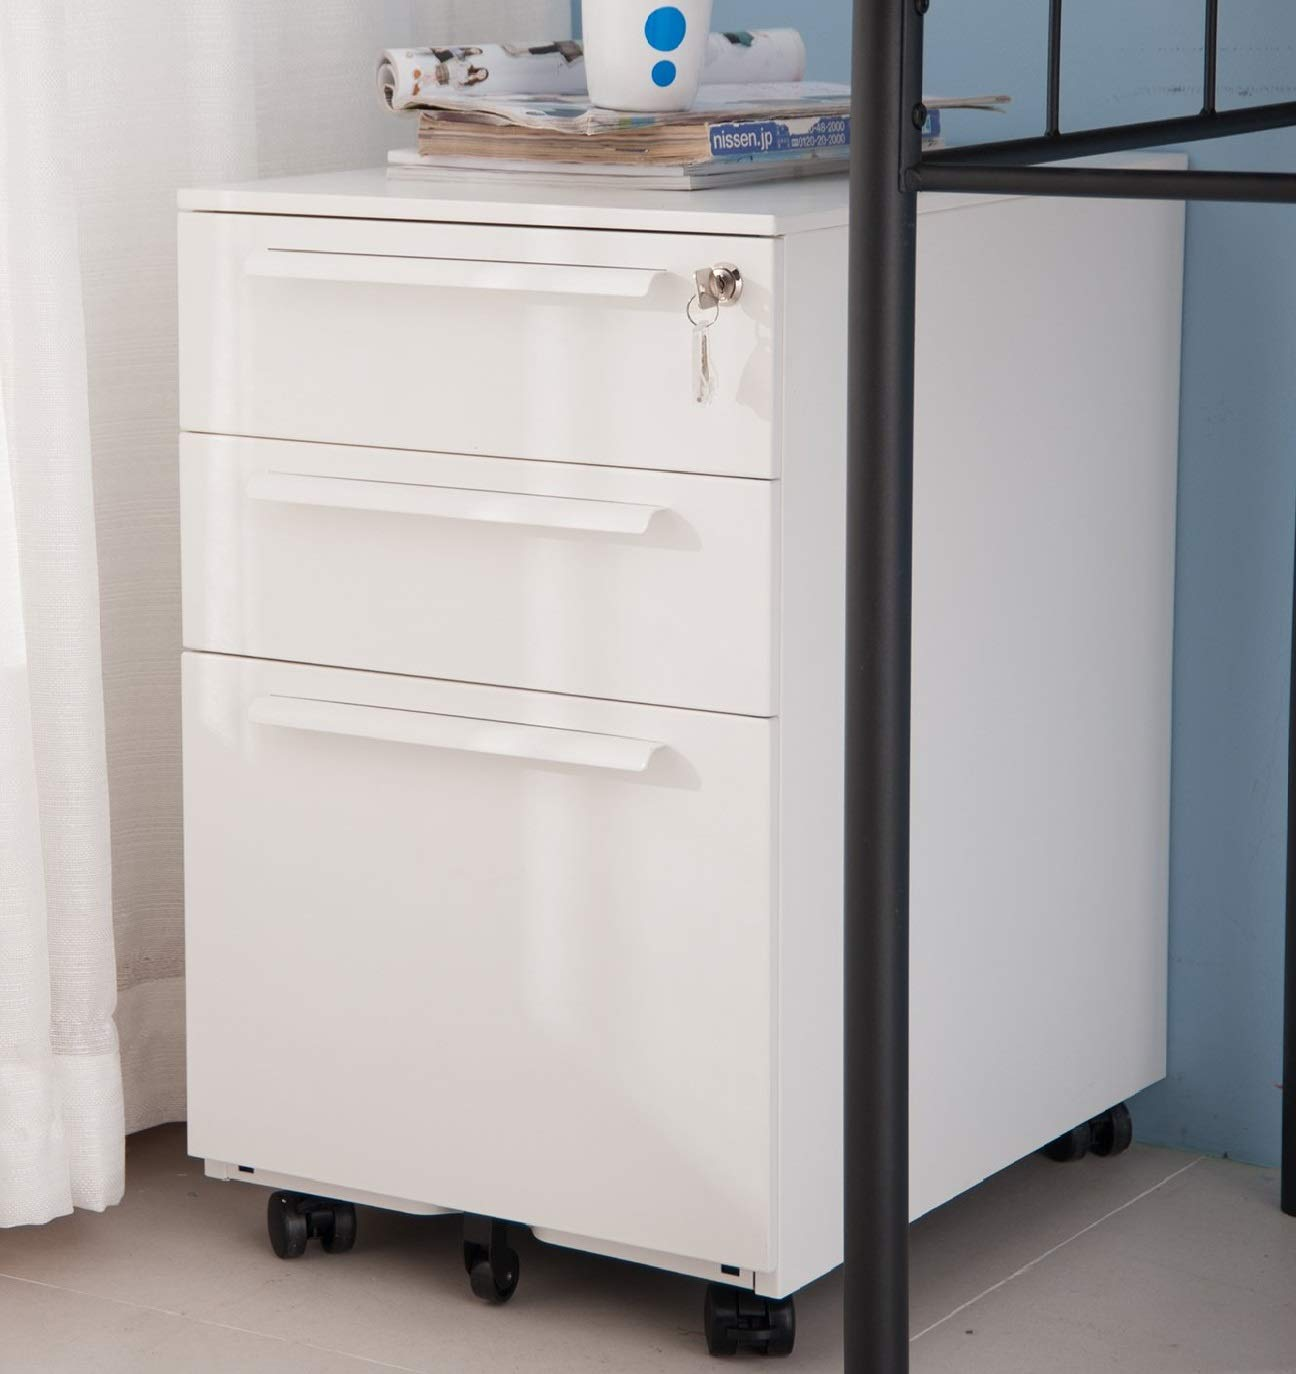 3 Drawer File Cabinet Rolling Metal Filing Cabinet with Lock Mobile Pedestal Storage Fully Assembled Without Casters (White)